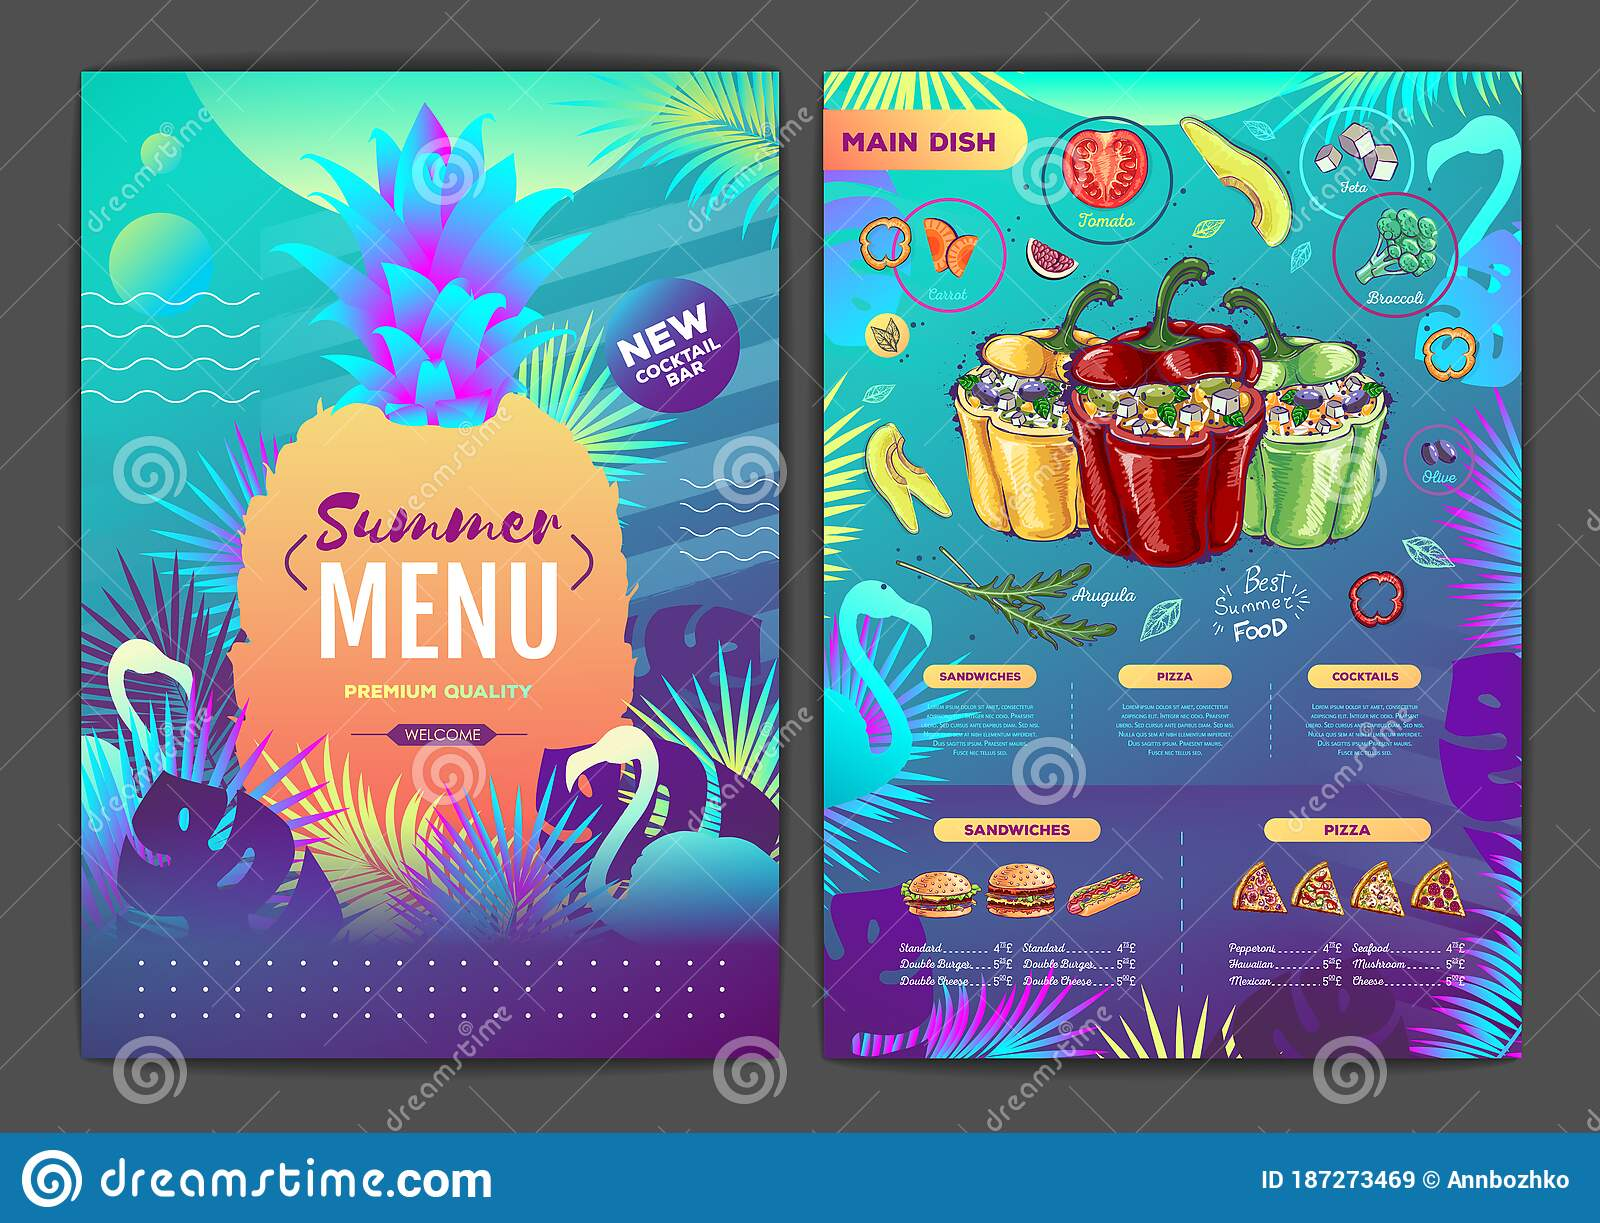 Restaurant Summer Tropical Gradient Menu Design With Fluorescent Tropic Leaves And Flamingo Fast Food Menu Stock Vector Illustration Of Corporate Beach 187273469